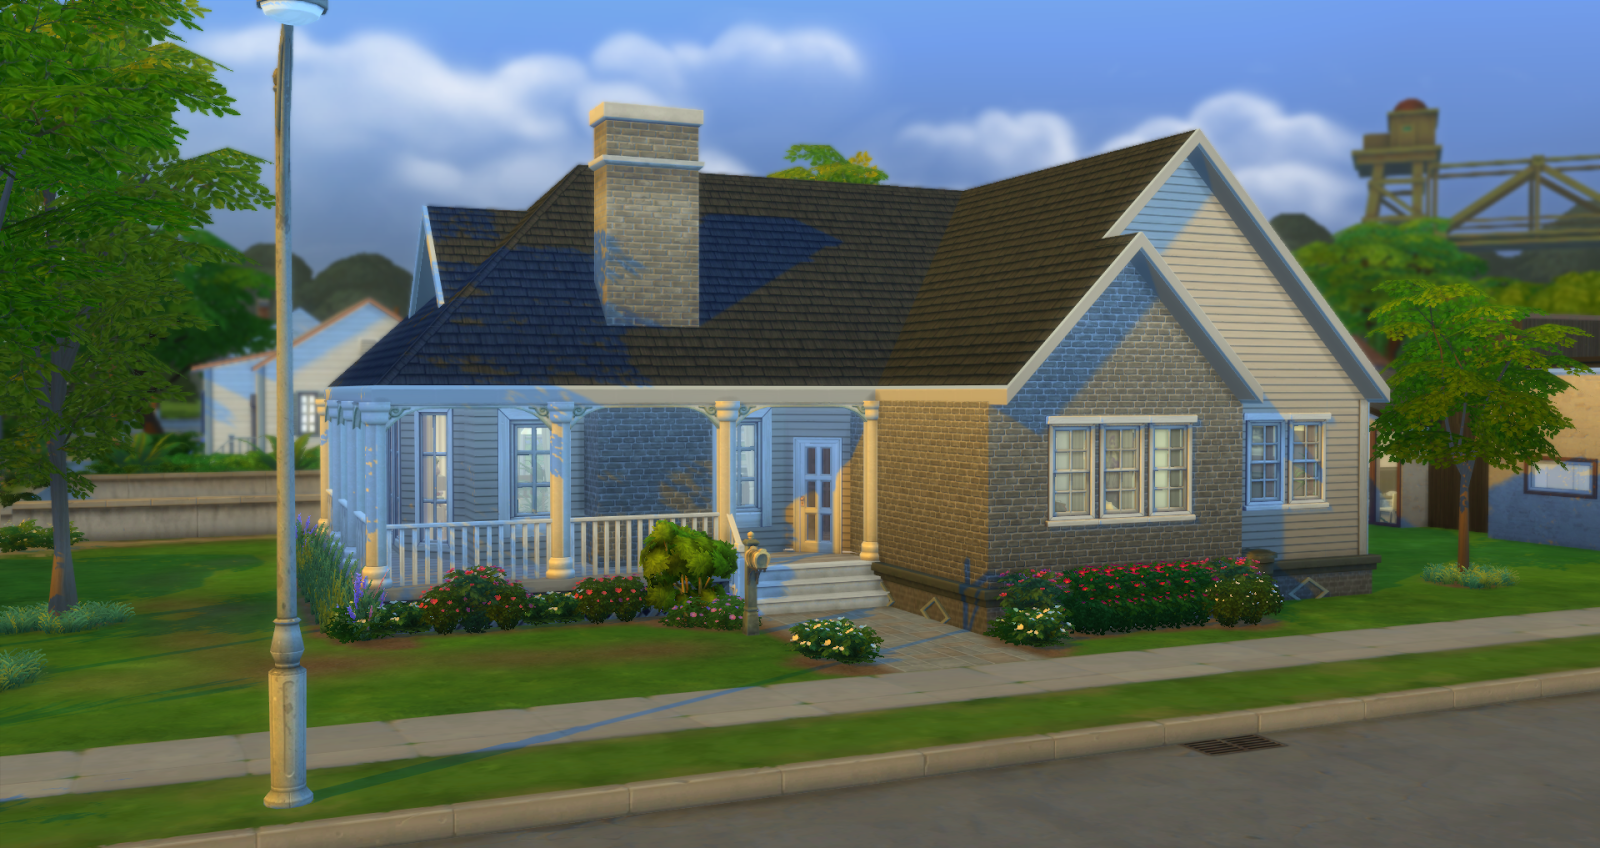 Lacey loves sims country tranquility for Small starter homes